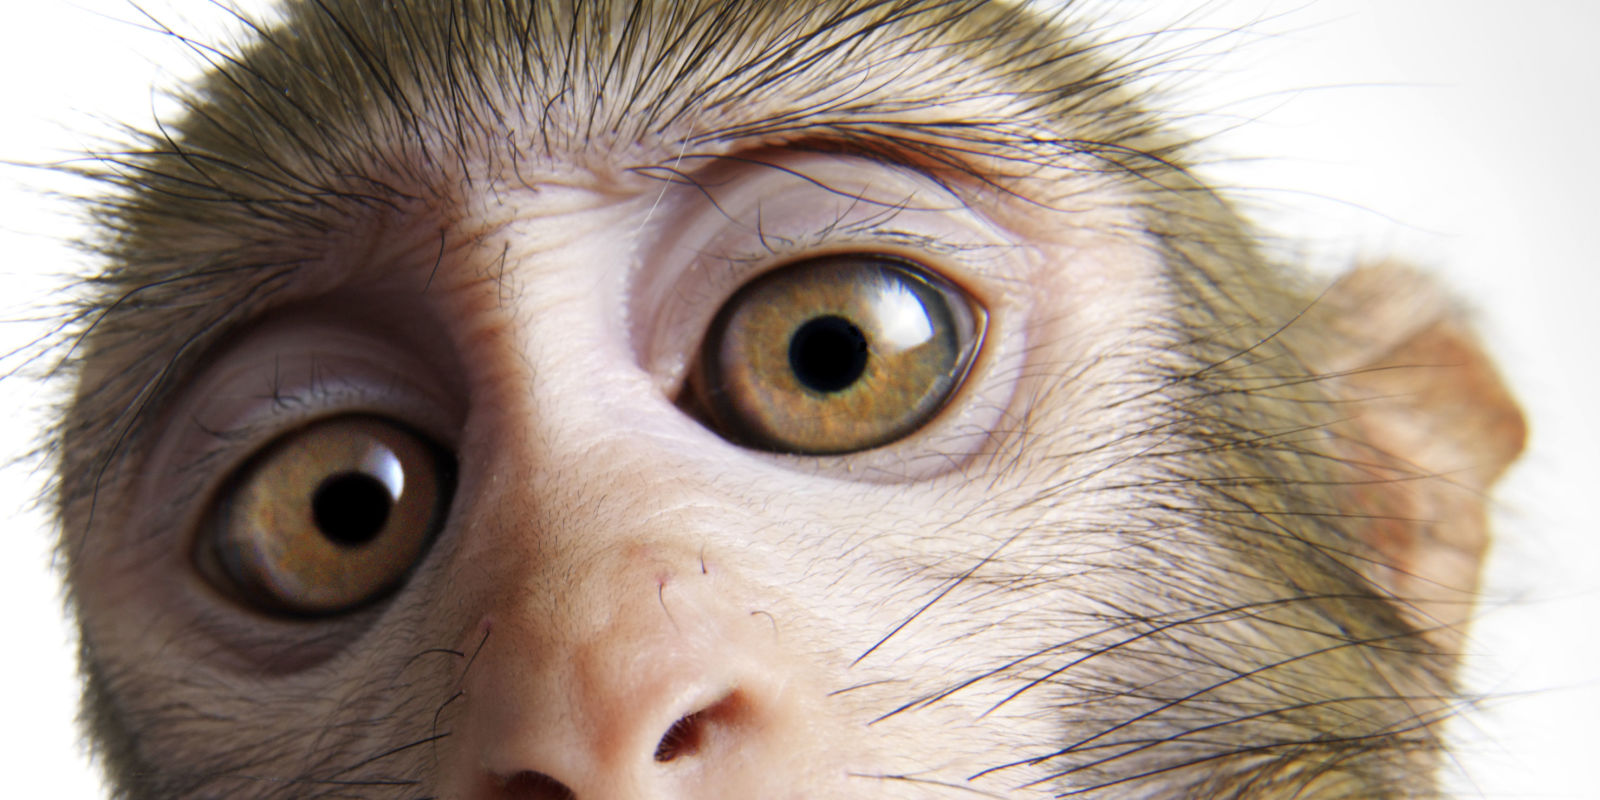 Lab Grown Cells Restore Sight To Blind Monkeys